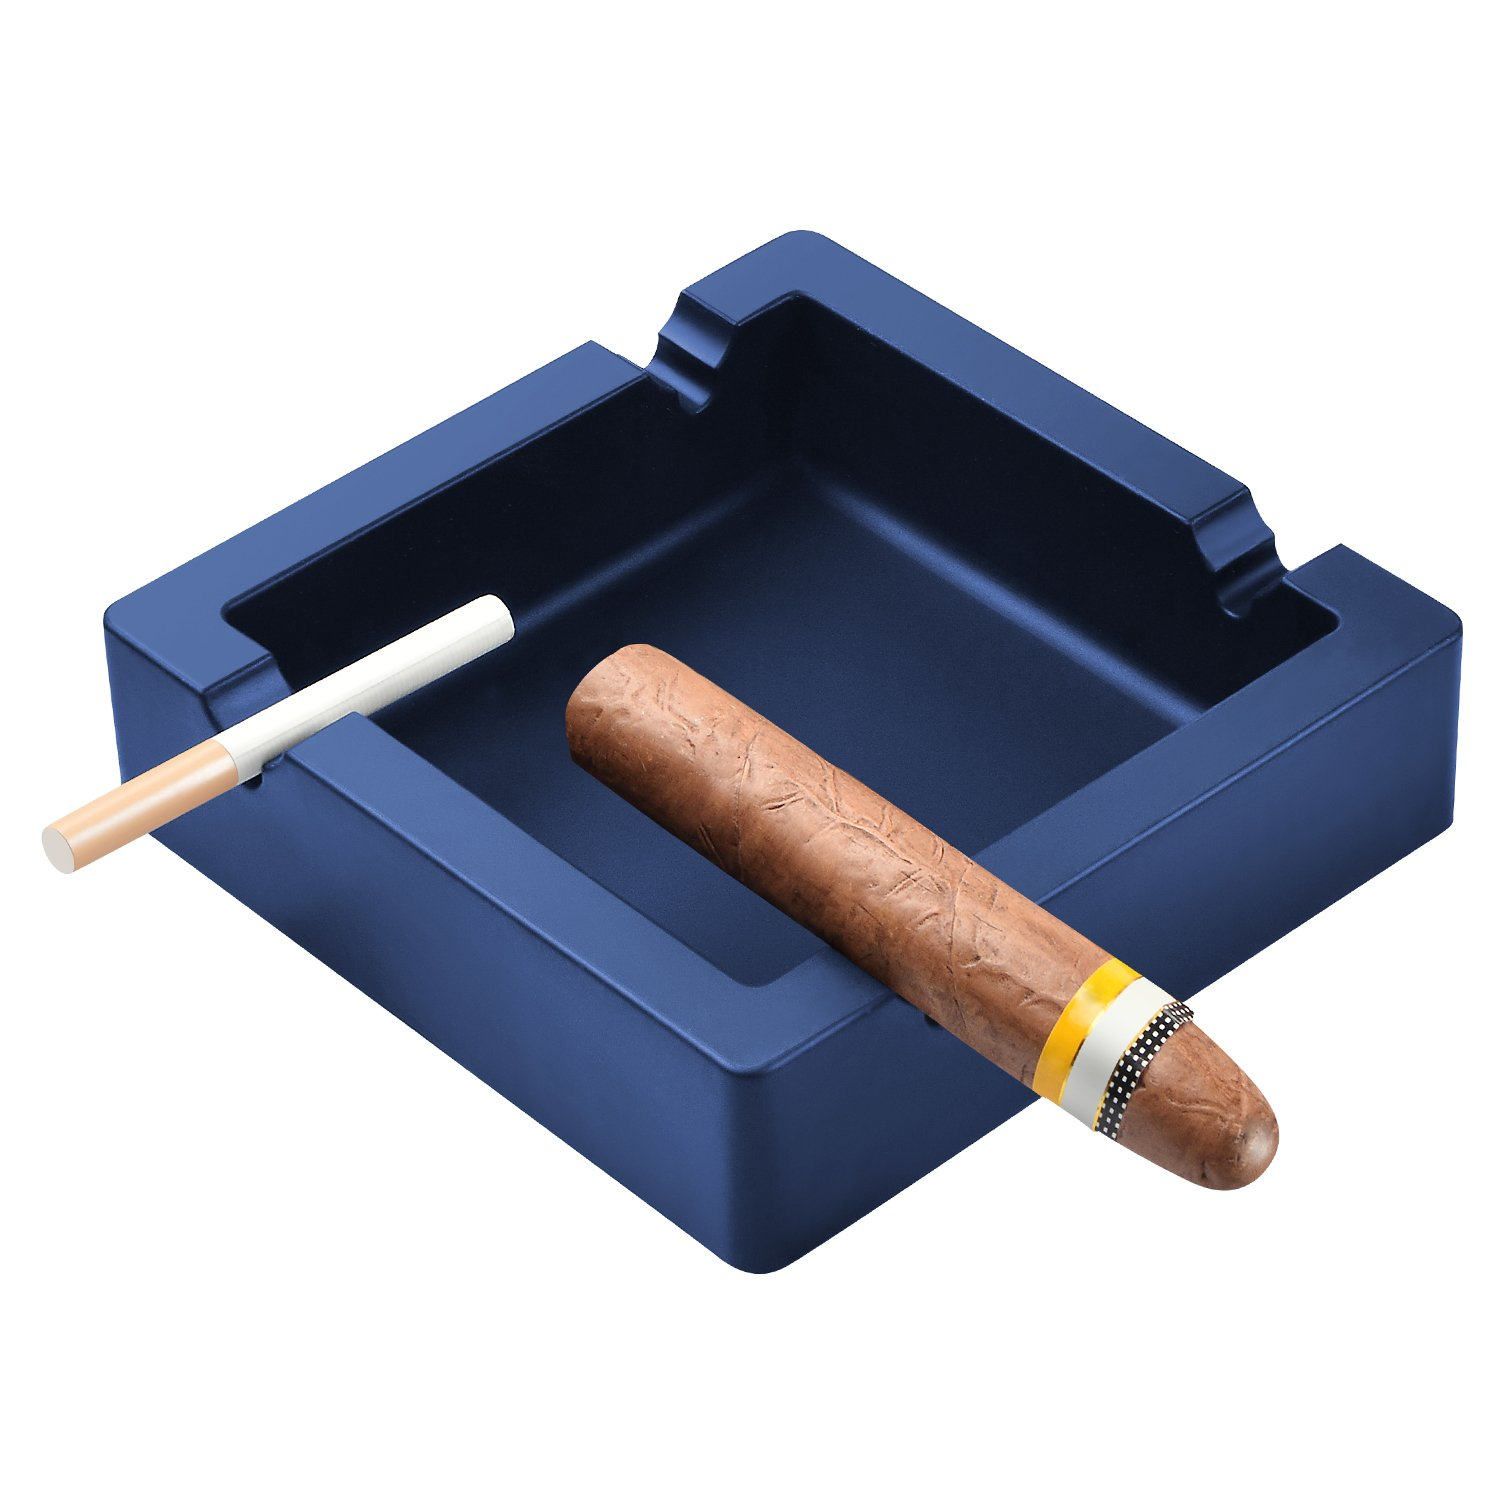 OILP Large Cigar Ashtray for Men Big Ashtrays for Cigarettes Dual-use Rest Unbreakable Silicone Ashtrays for Outdoor Indoor Ashtray Home Decor Modern Ashtray (Navy Blue)